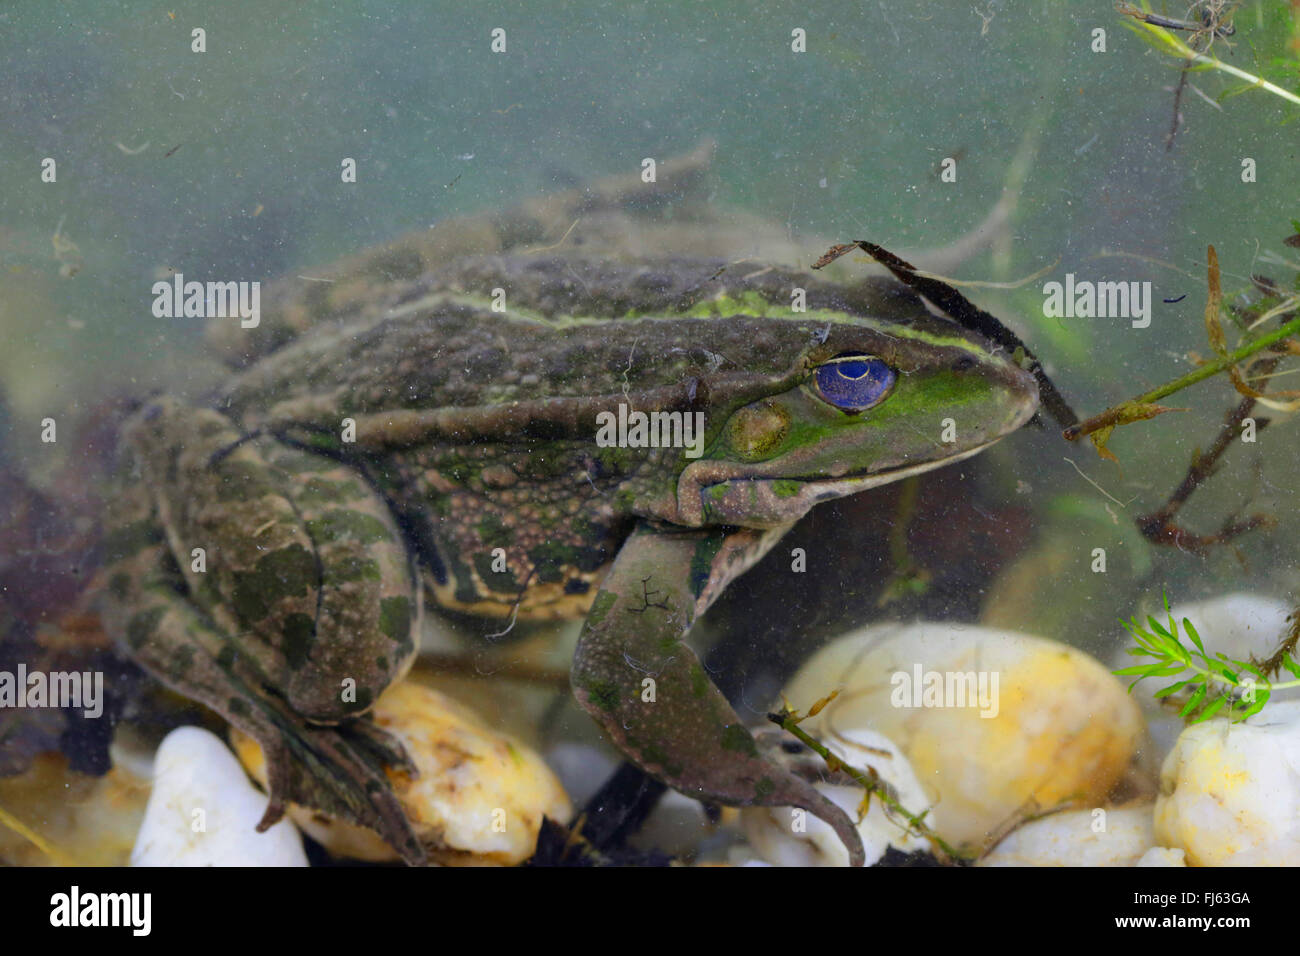 marsh frog, lake frog (Rana ridibunda, Pelophylax ridibundus), on the ground of a pond, Germany, Bavaria - Stock Image